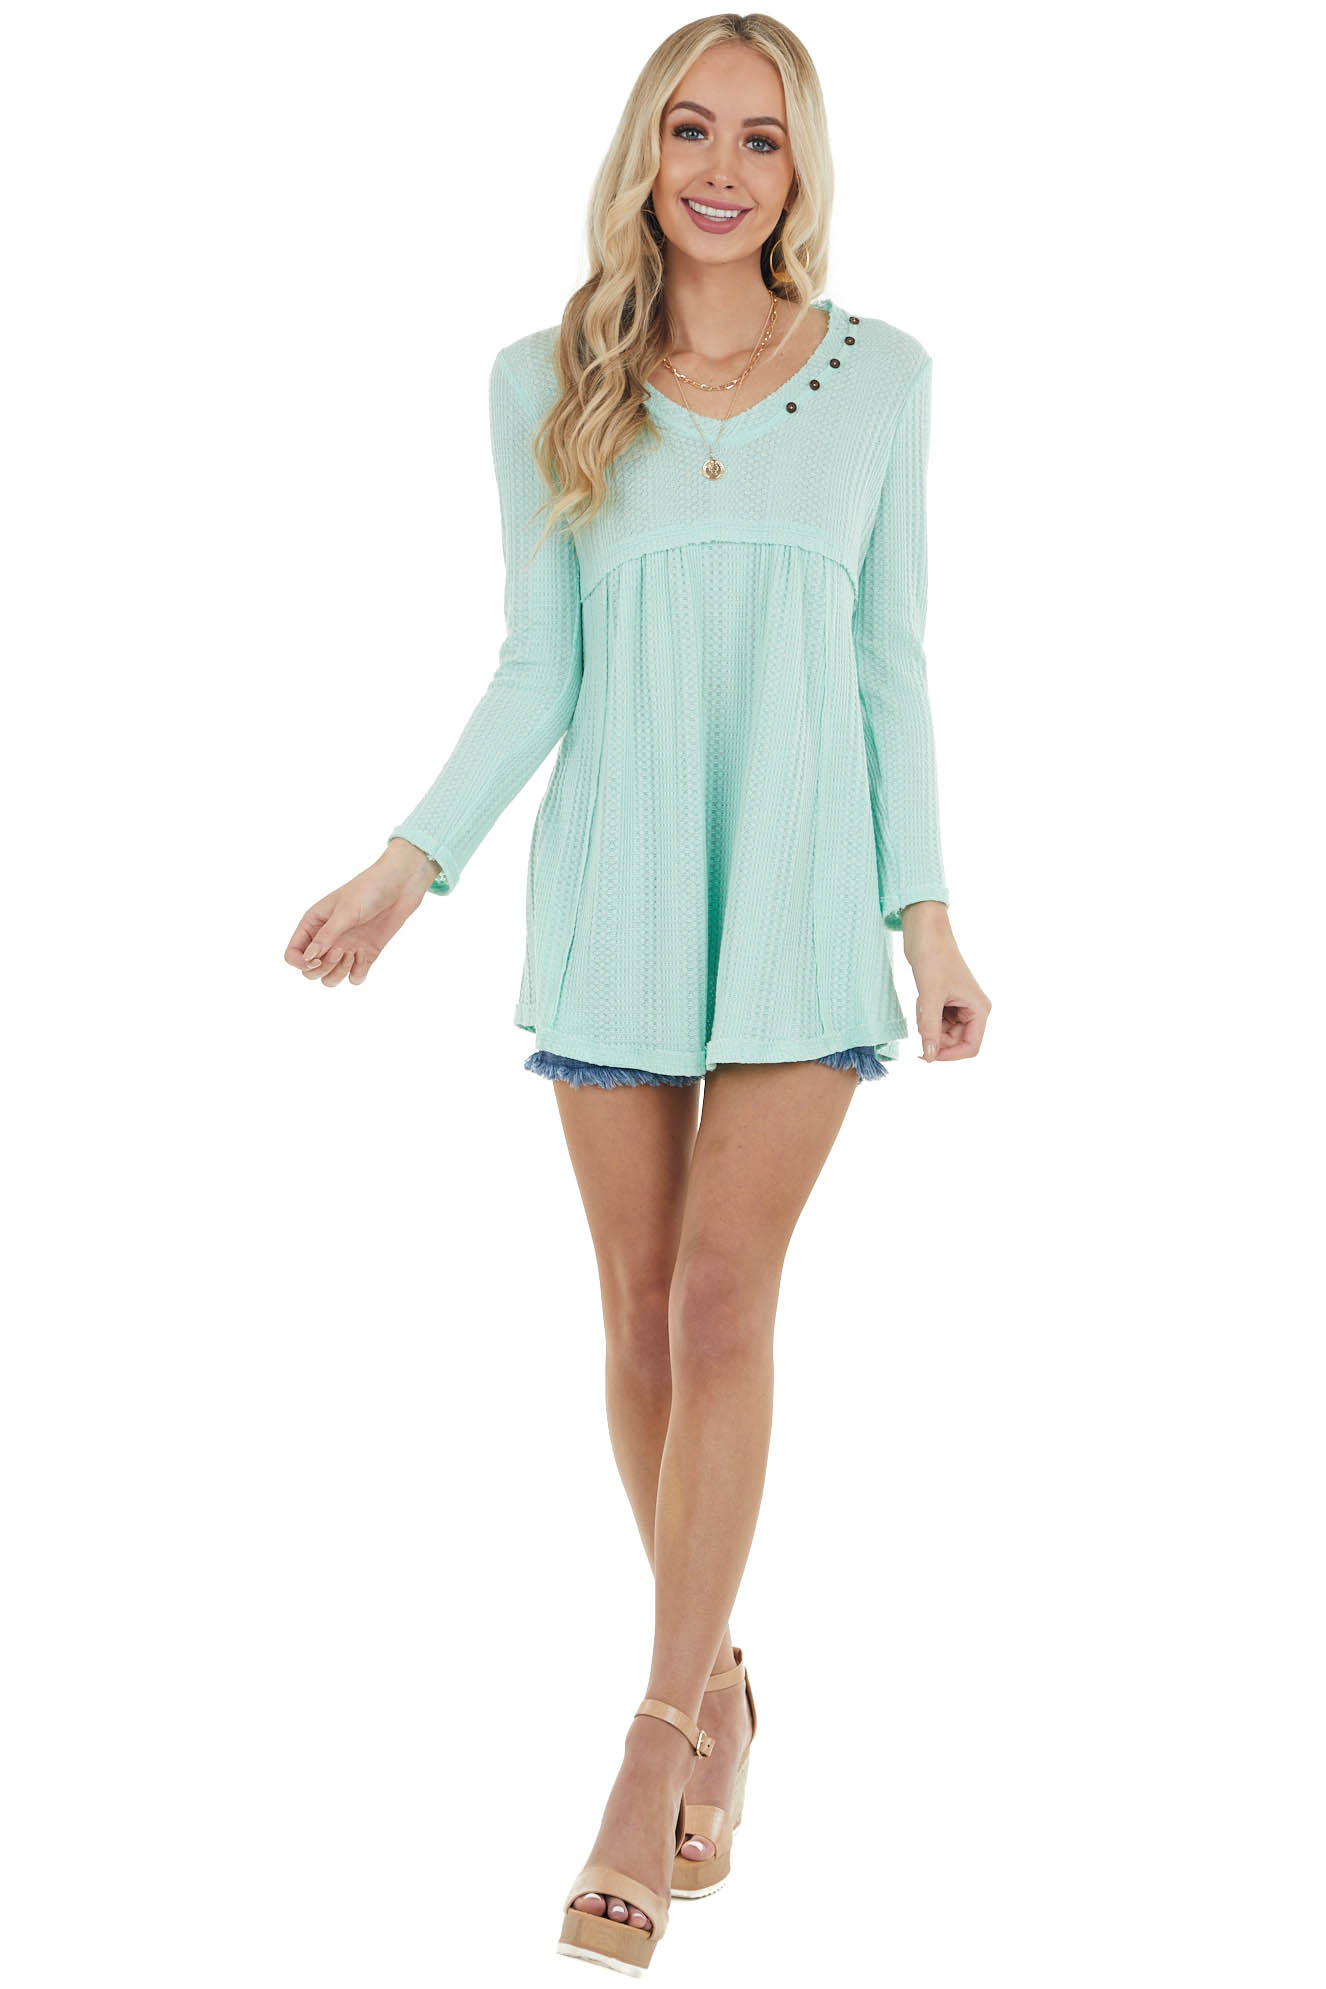 Mint Waffle Knit Babydoll Long Sleeve Tunic Top with Buttons